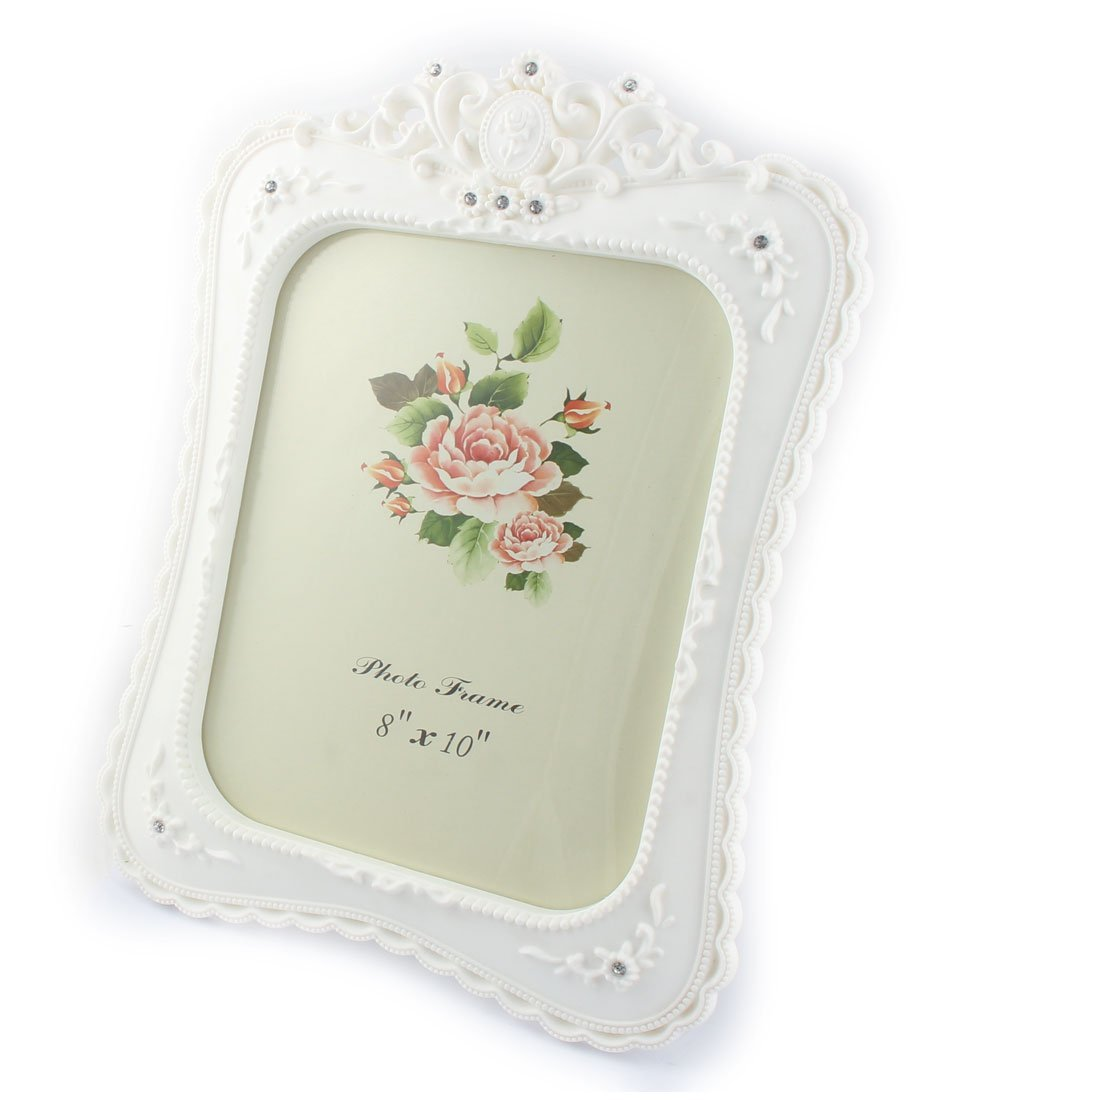 Cheap Flower Frame Border Find Flower Frame Border Deals On Line At